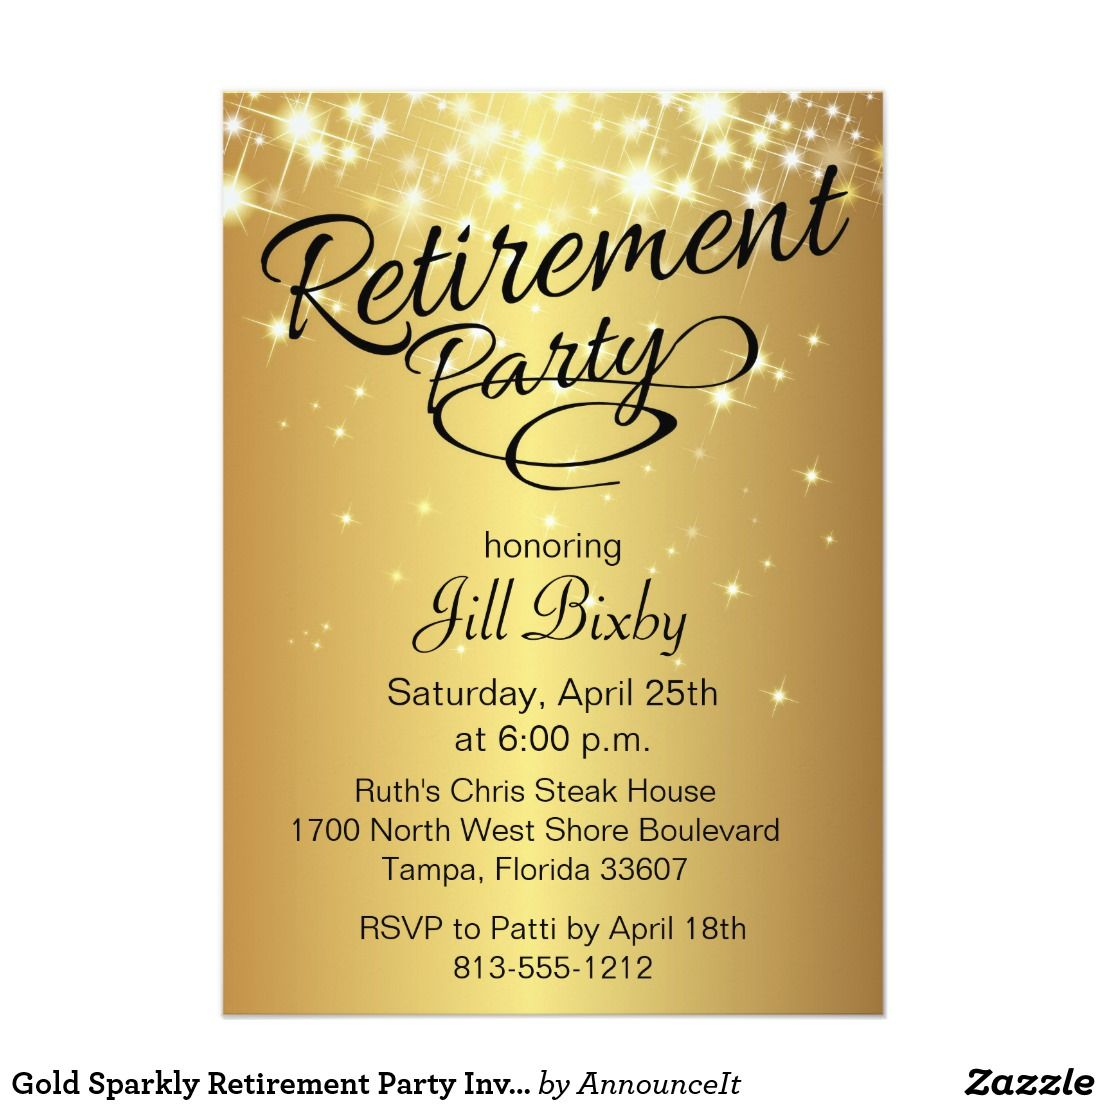 Gold Sparkly Retirement Party Invitation | Retirement parties and ...